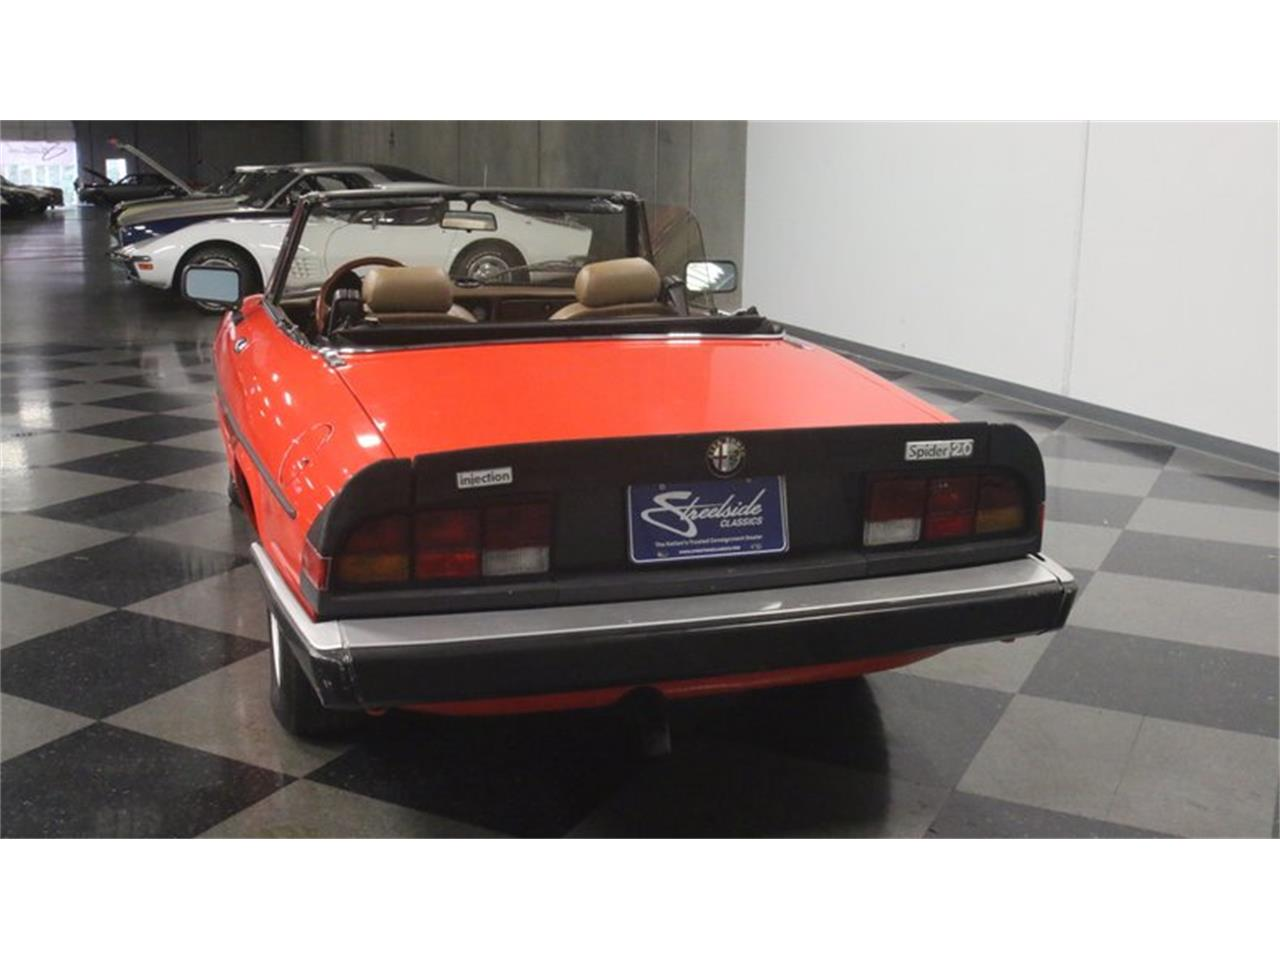 Large Picture of 1984 Spider Veloce located in Lithia Springs Georgia - $8,995.00 - OX0E